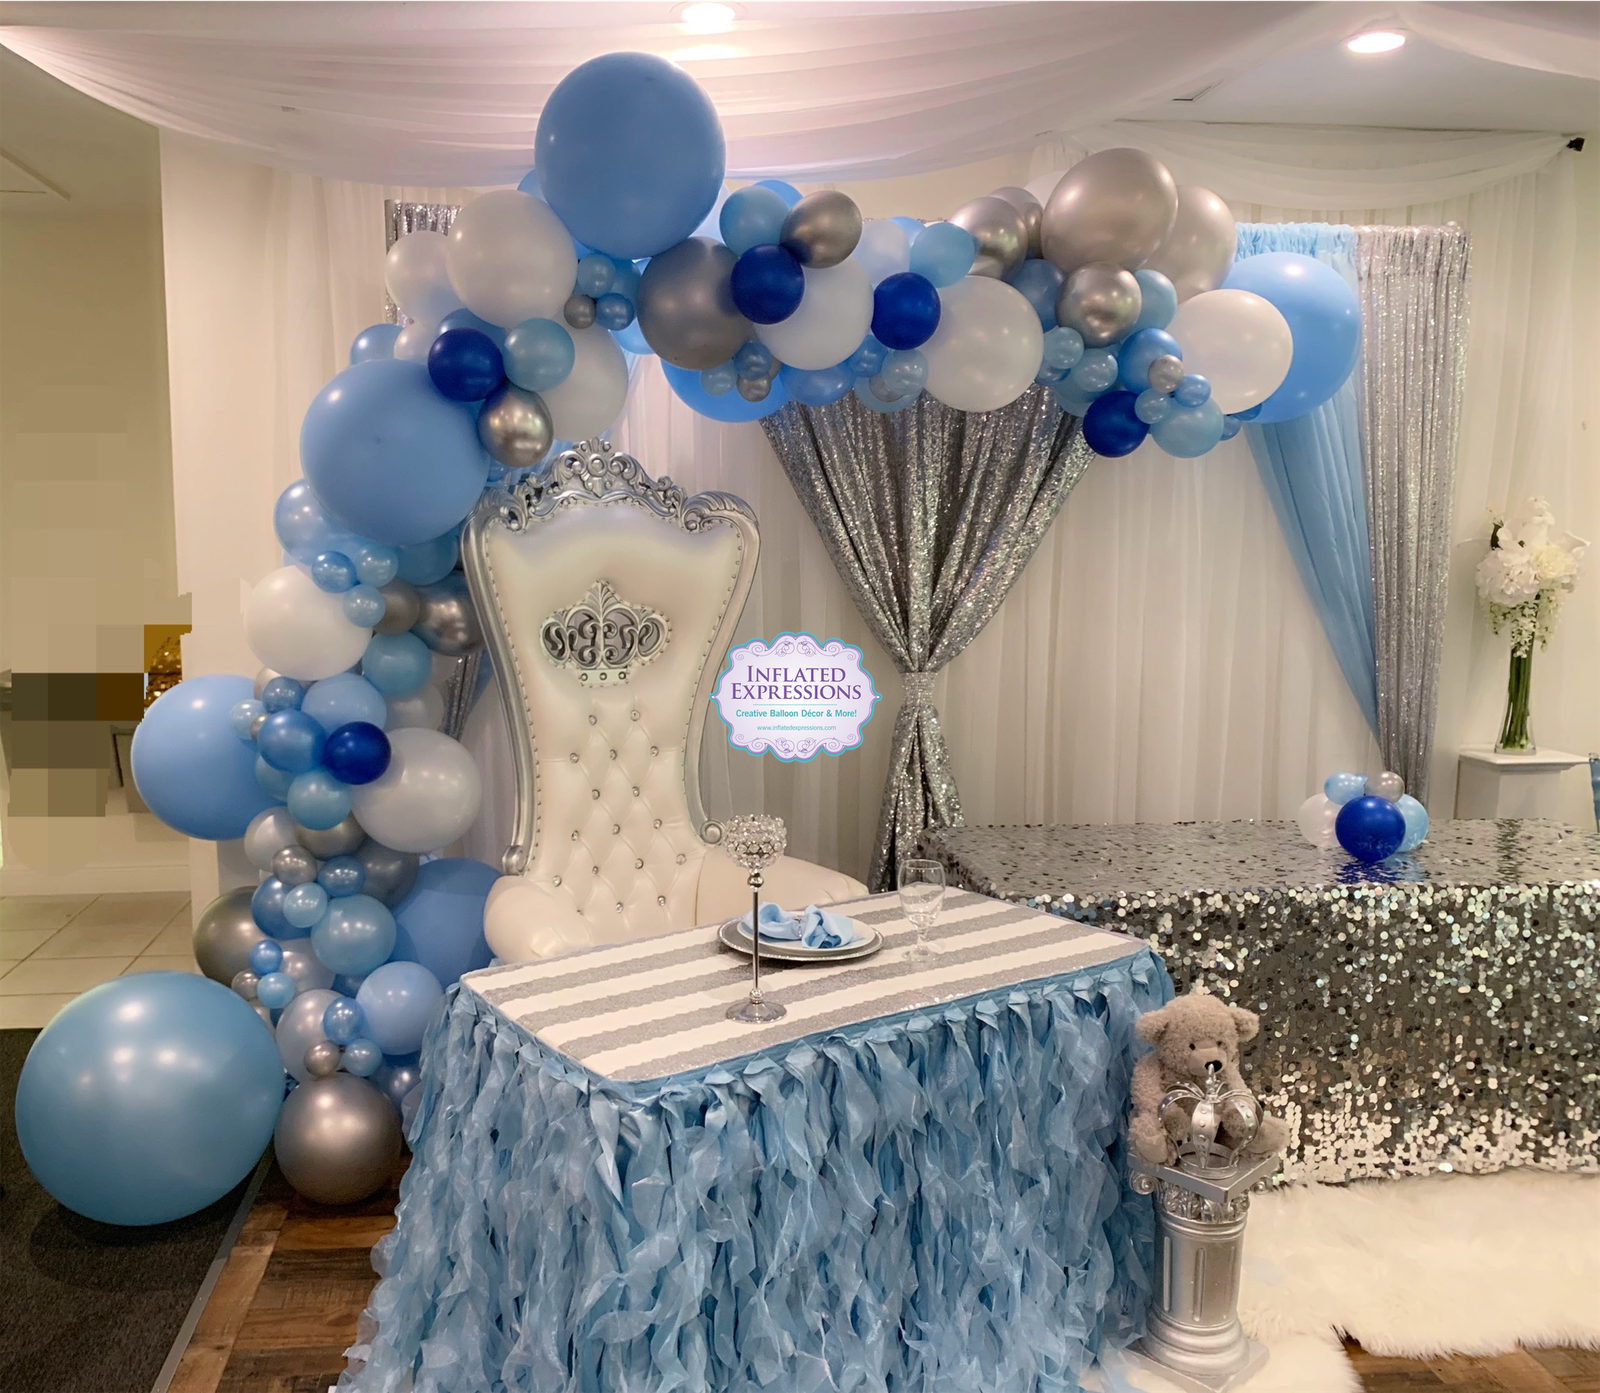 Extra Large Organic Garland Balloon Arch Inflated Expressions